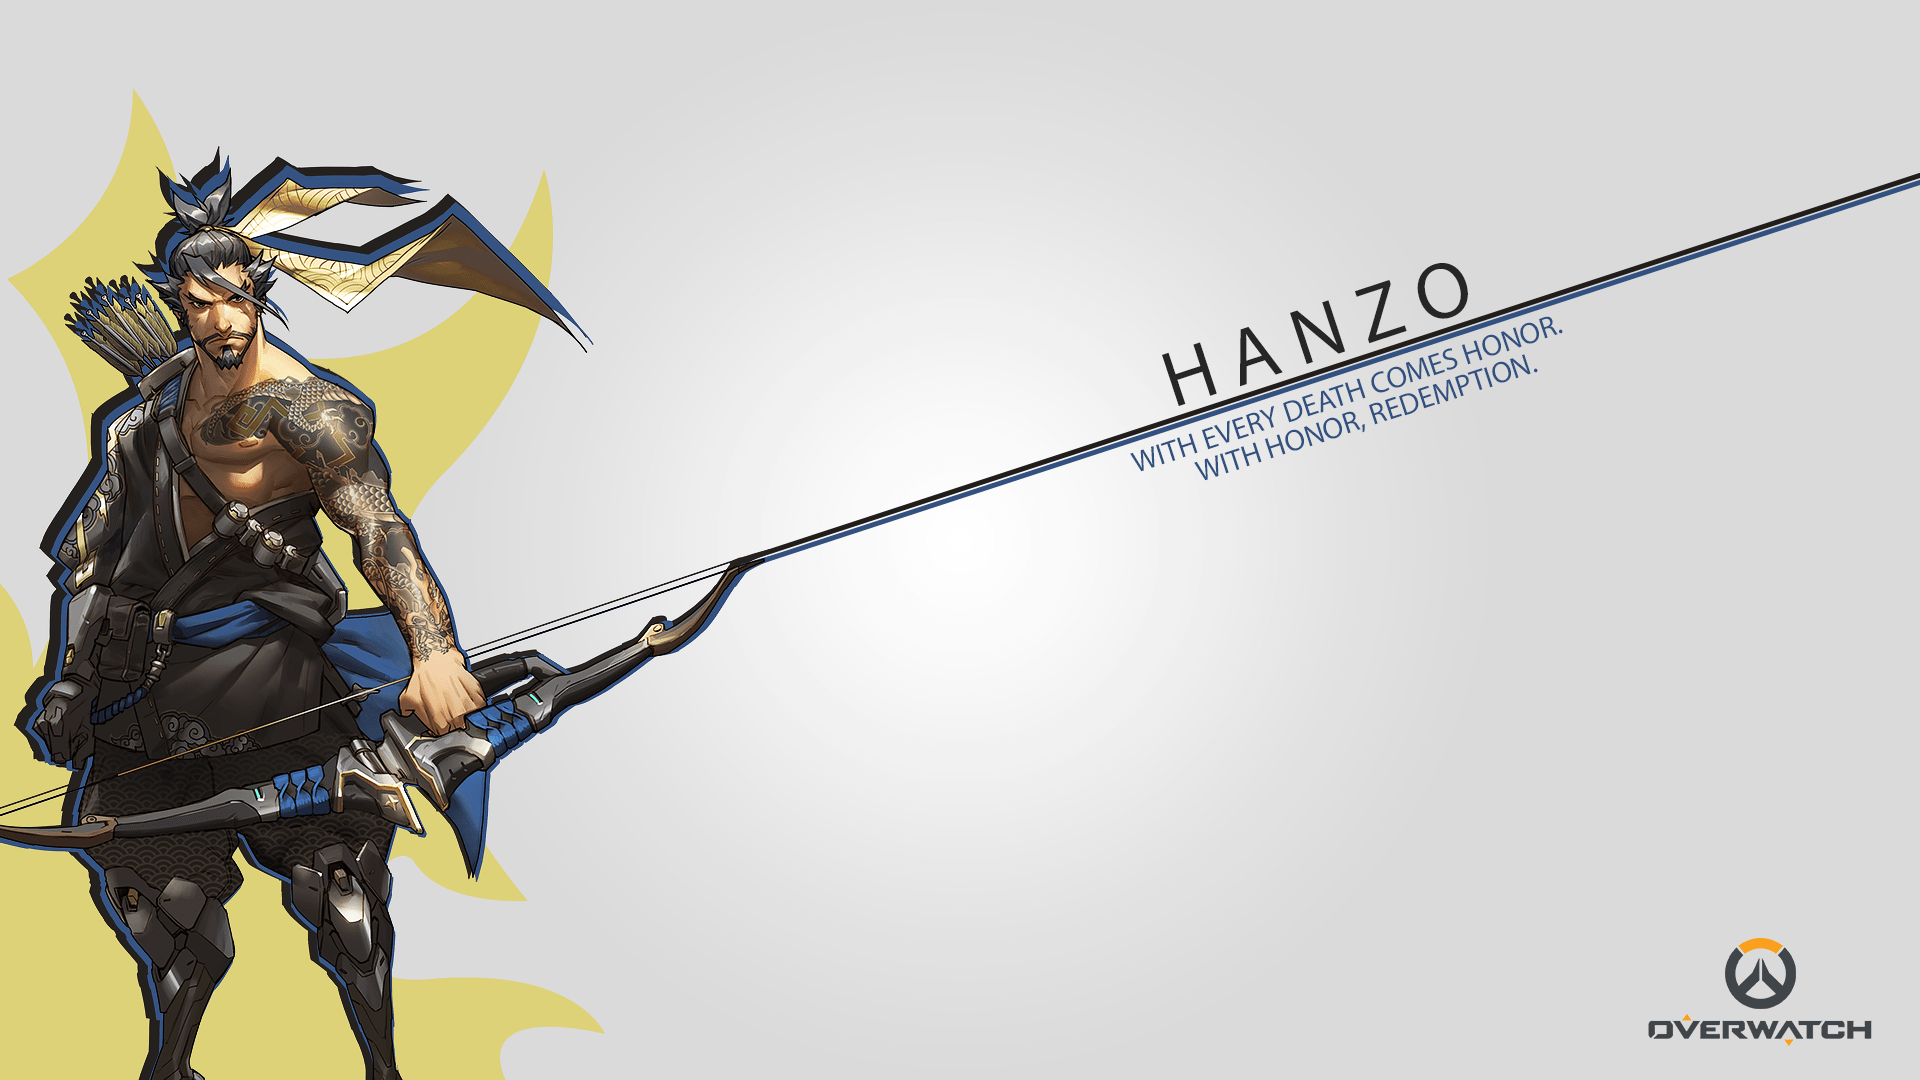 Overwatch : Hanzo Full hd wallpapers